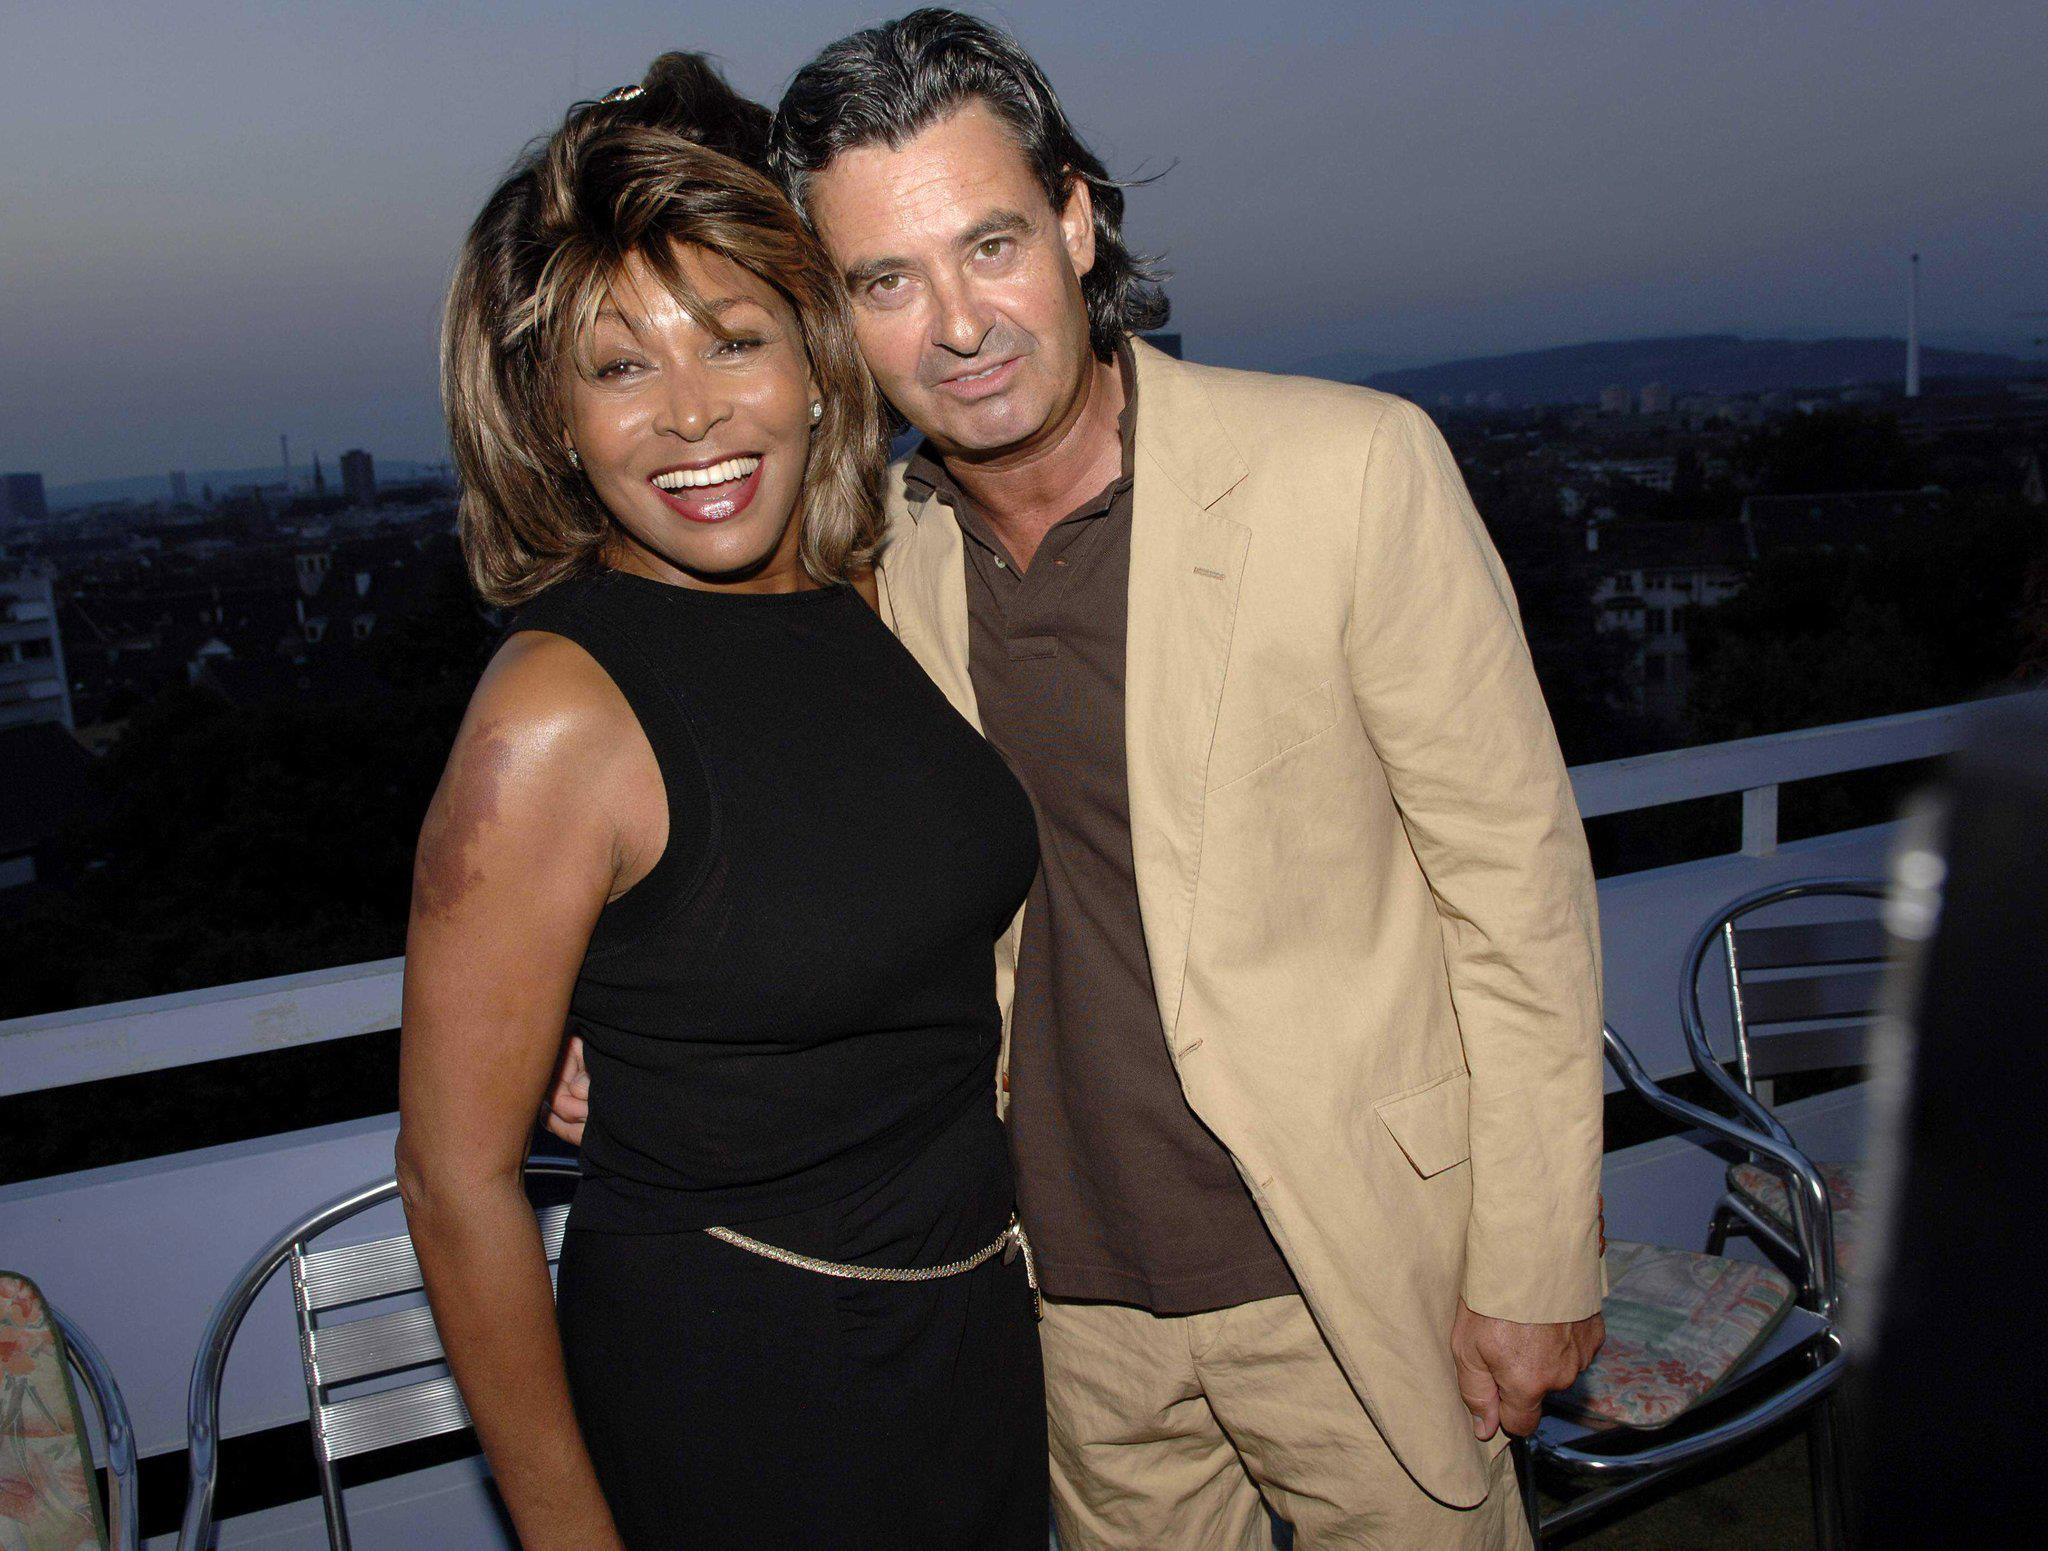 ... Want Tina Turner For a Grammy Lifetime Achievement Award on Facebook